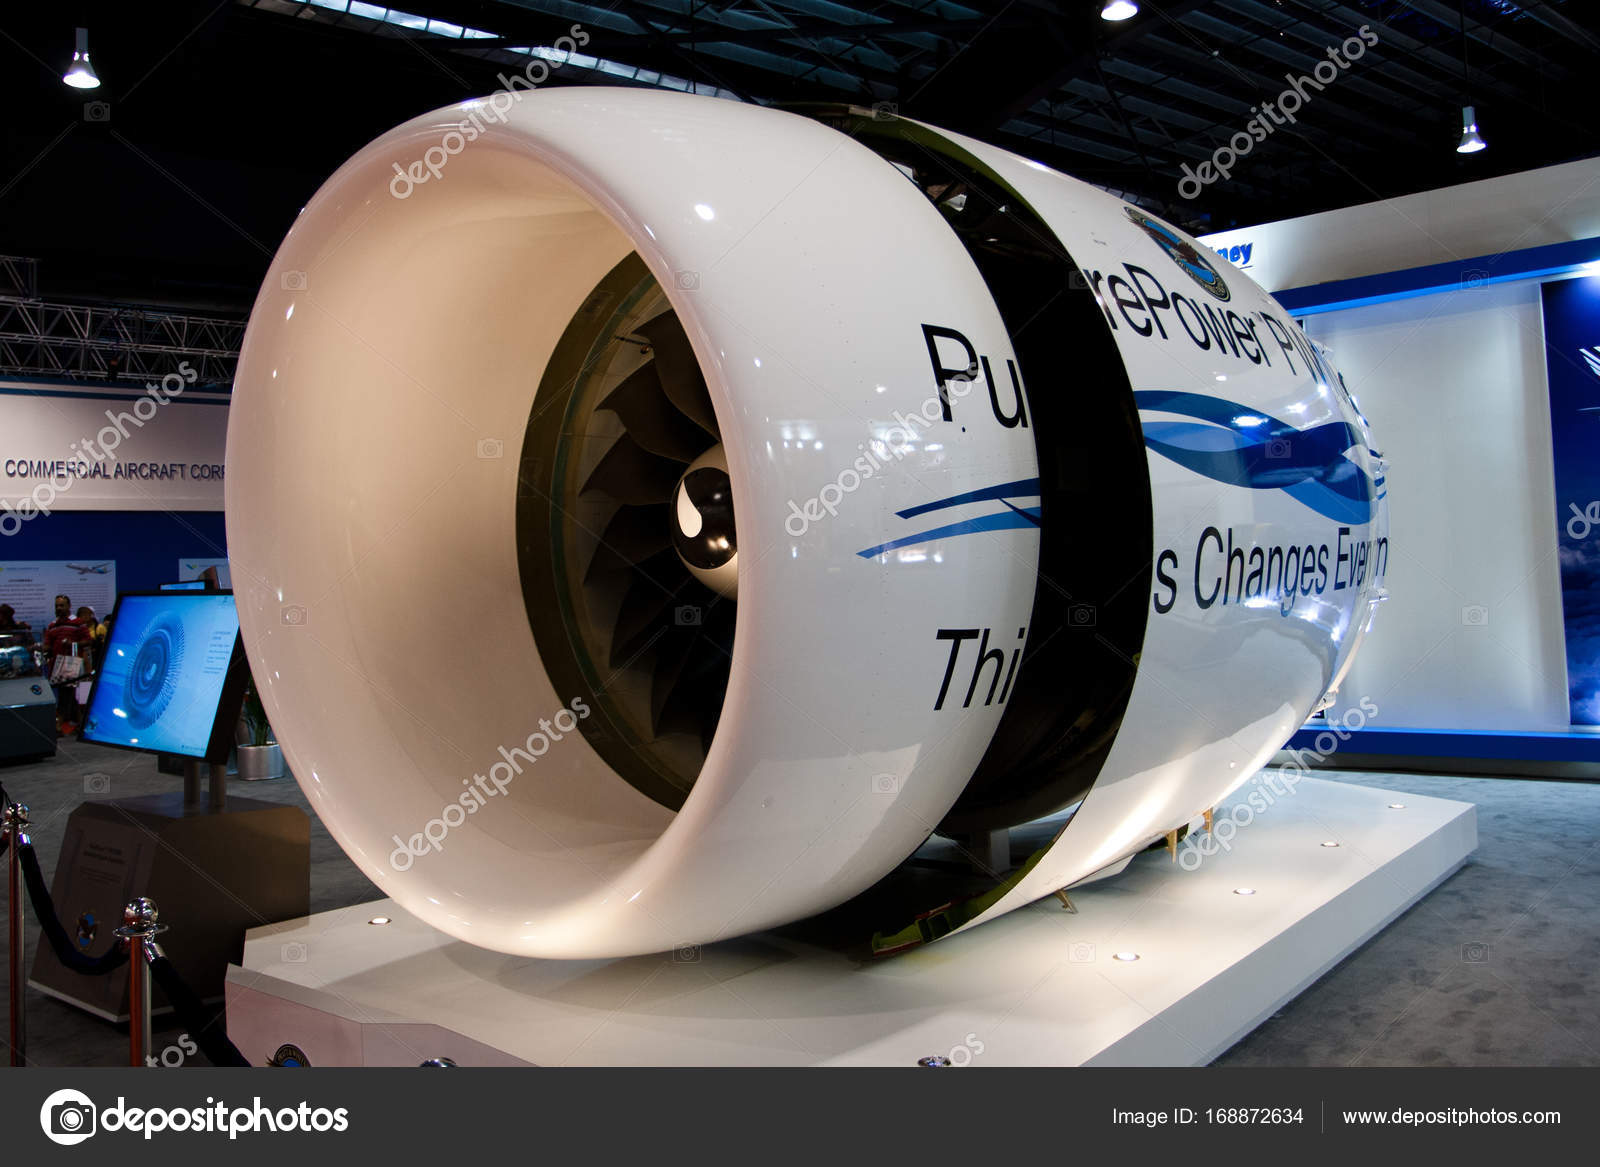 Pratt & Whitney Jet engine – Stock Editorial Photo